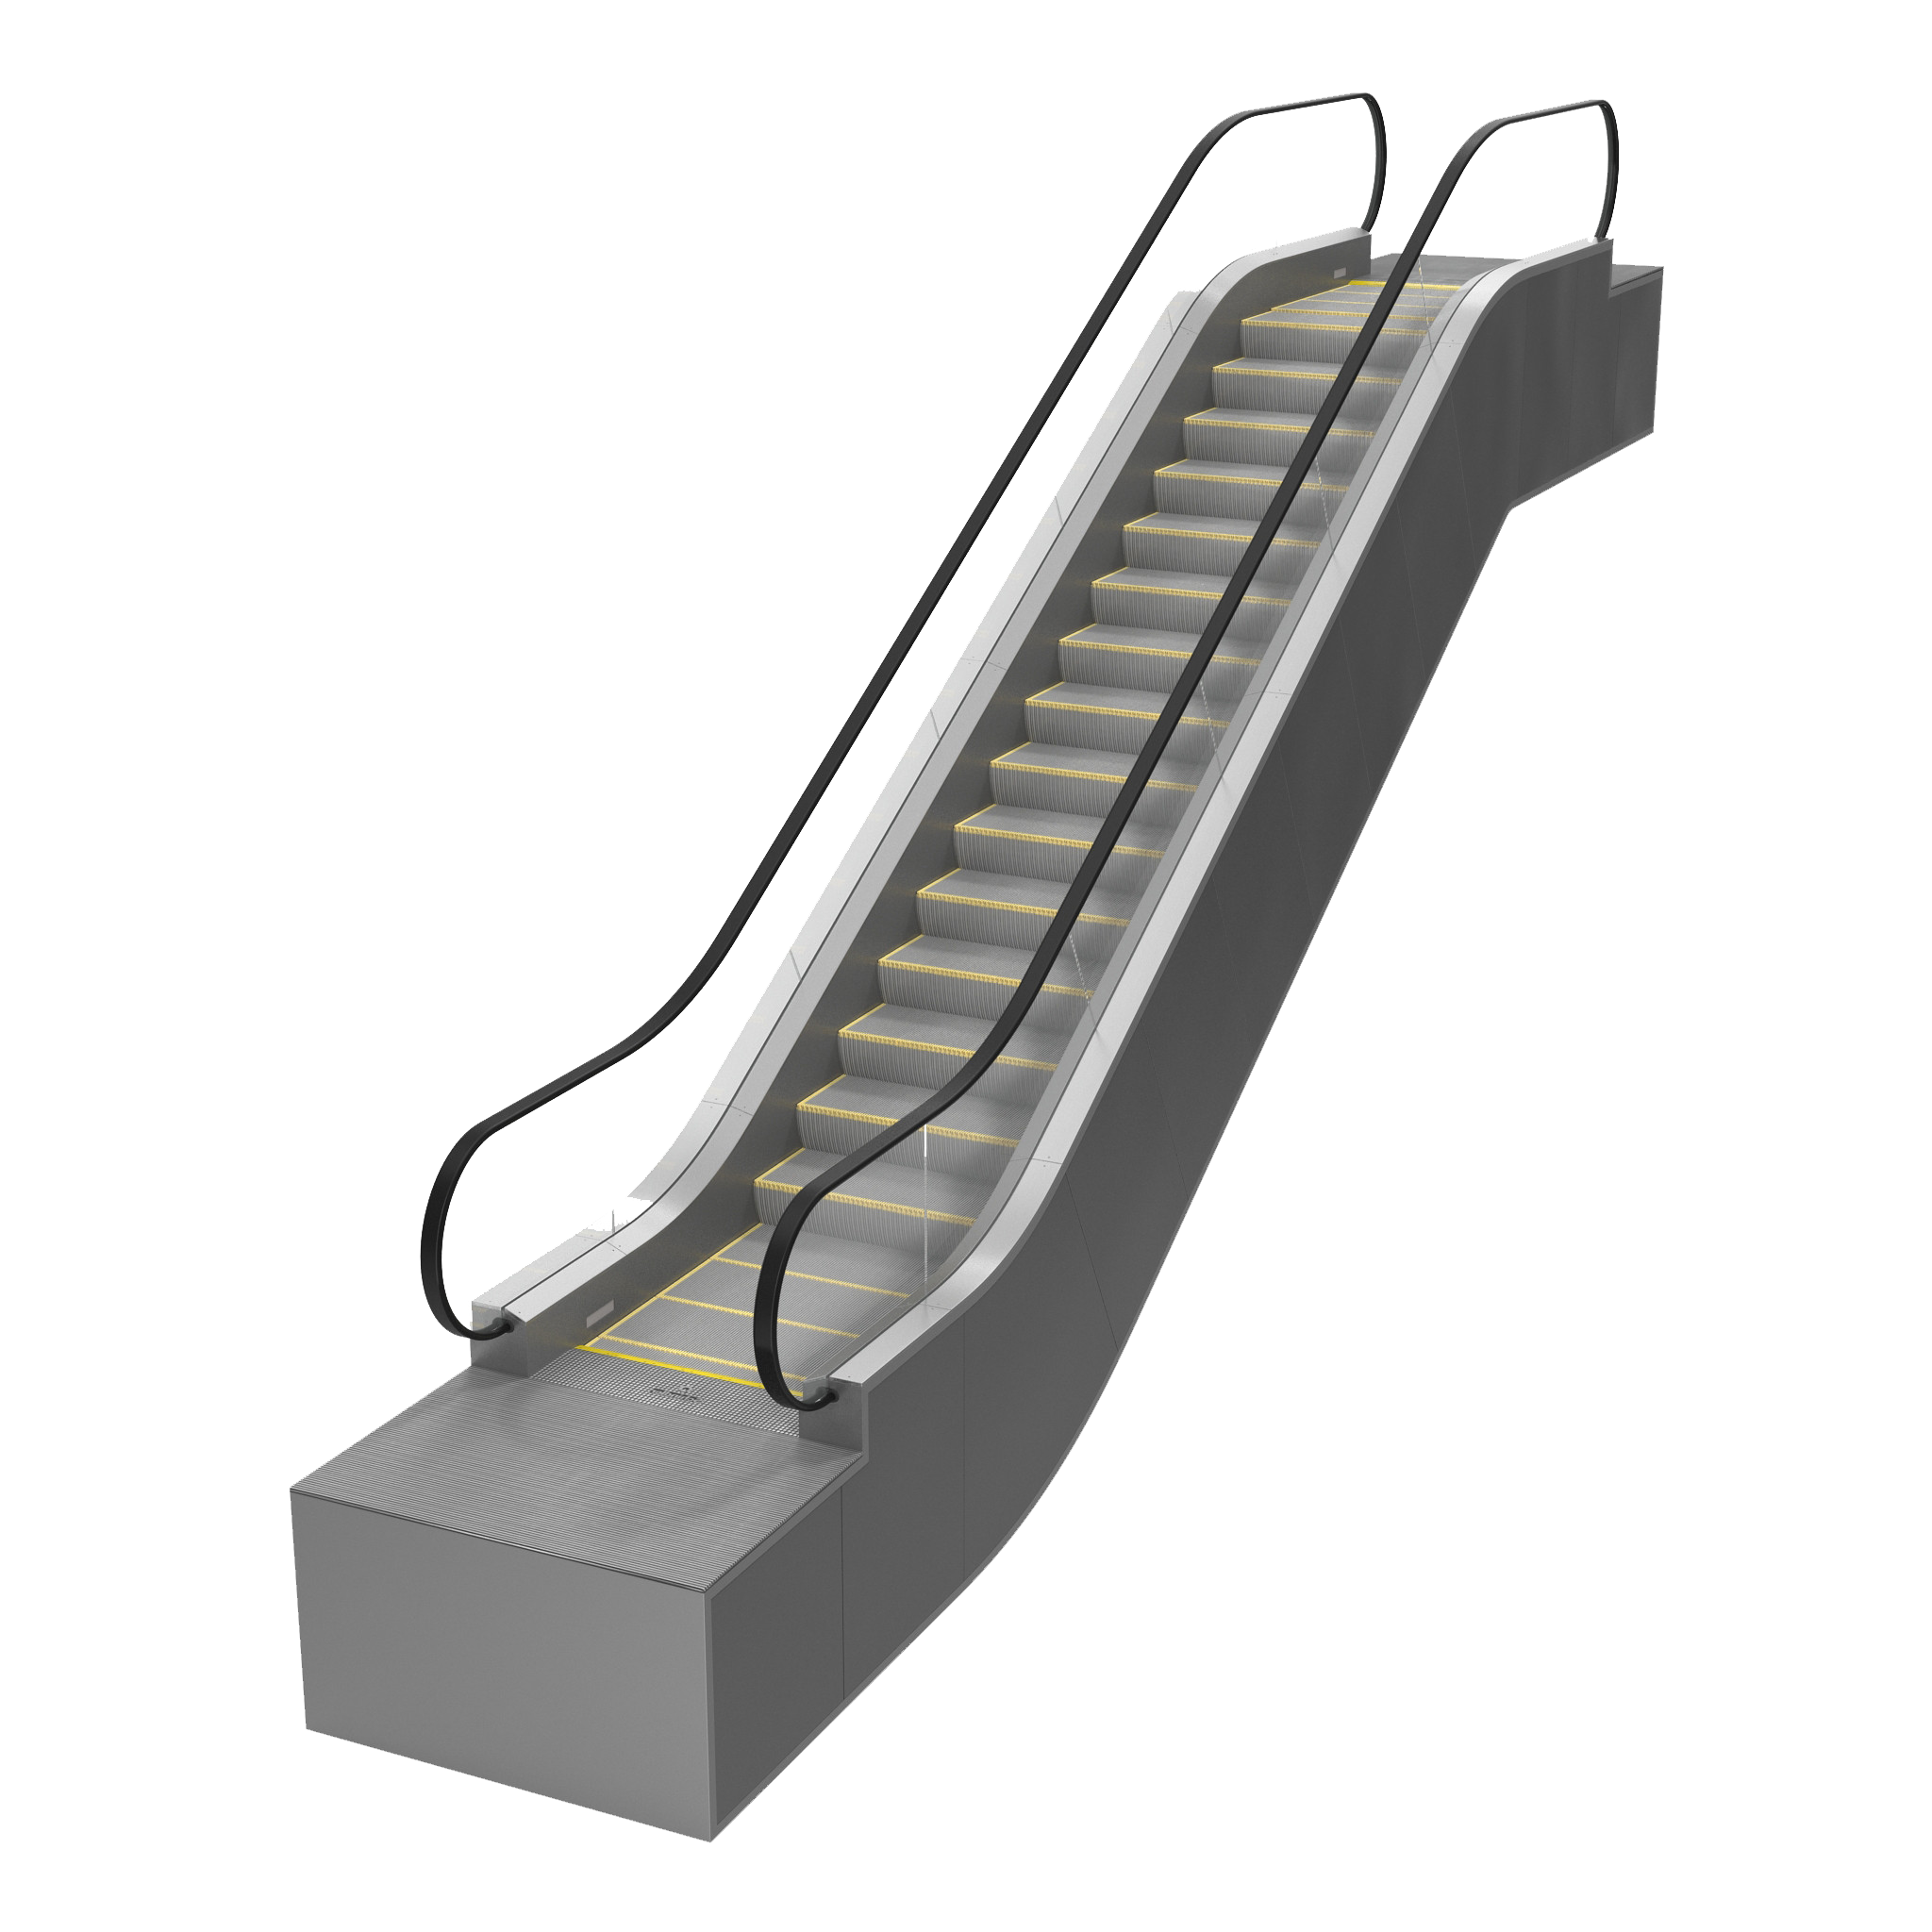 Escalator PNG Image - PNG Escalator